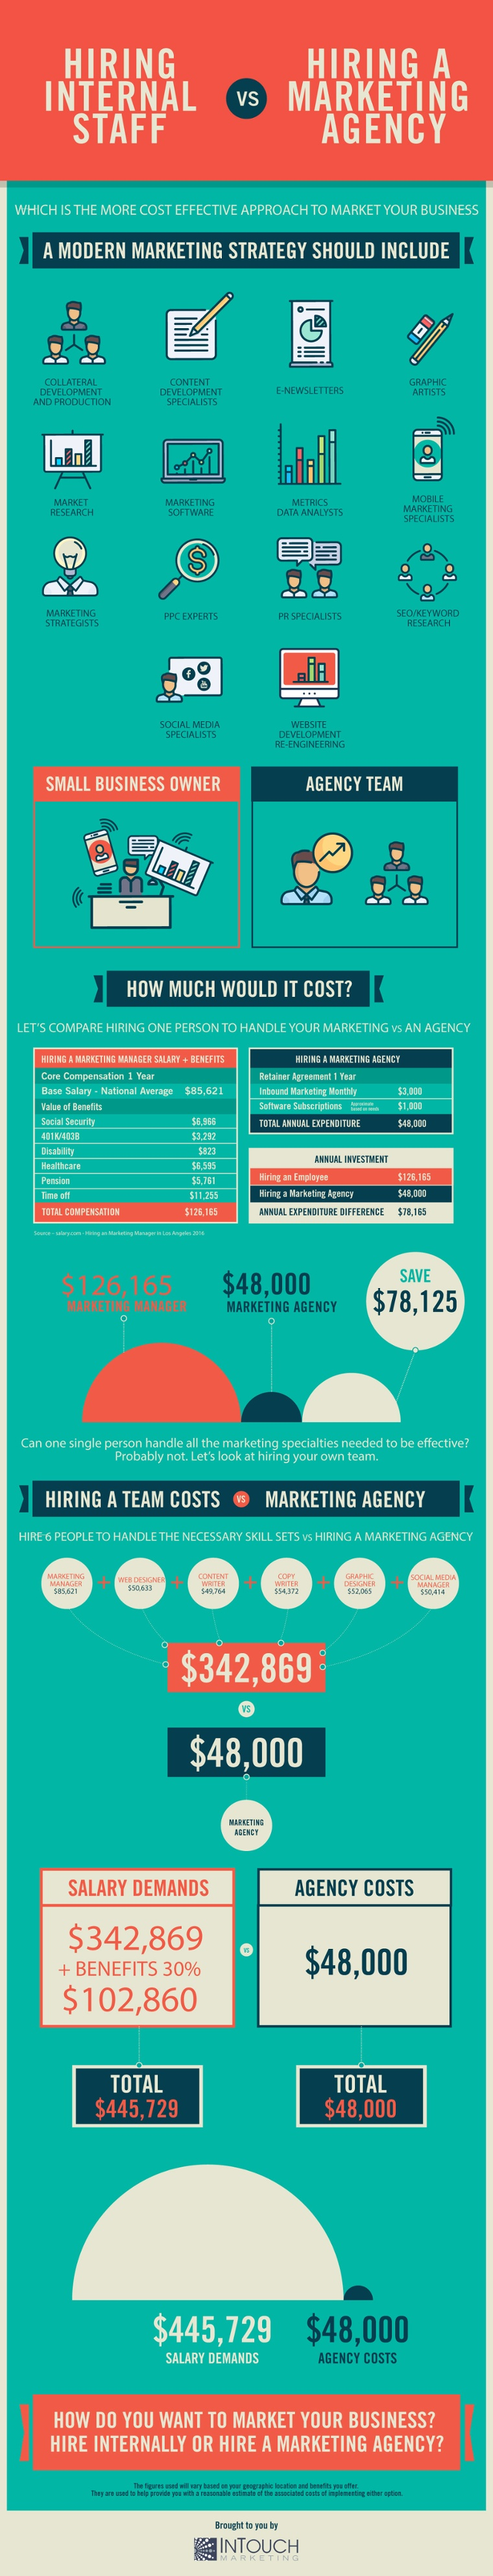 Hiring Internal Staff vs Hiring a Marketing Agency by Intouch Marketing